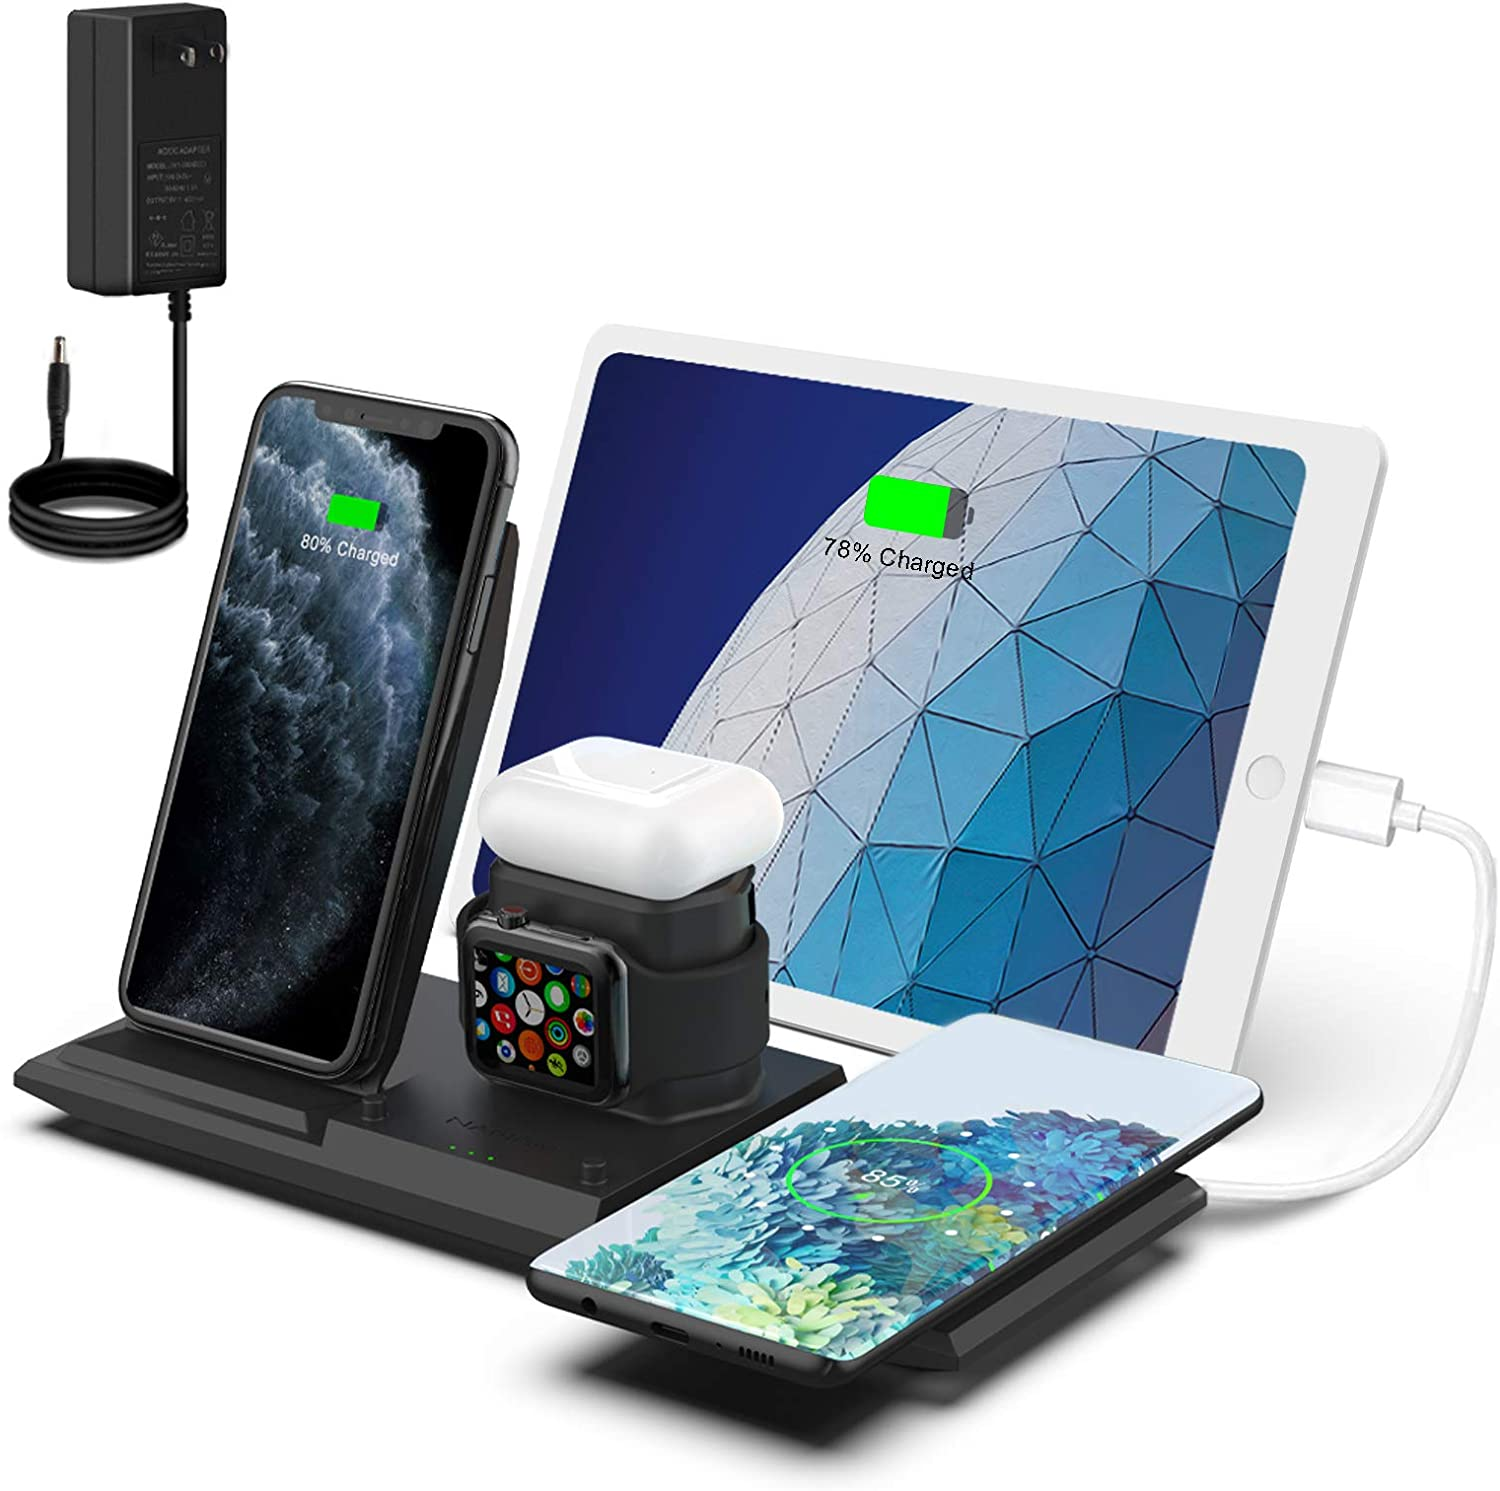 NANAMI Wireless Charger 5 Super beauty product restock quality top in 1 Station for Charging Fast Manufacturer regenerated product iWatch